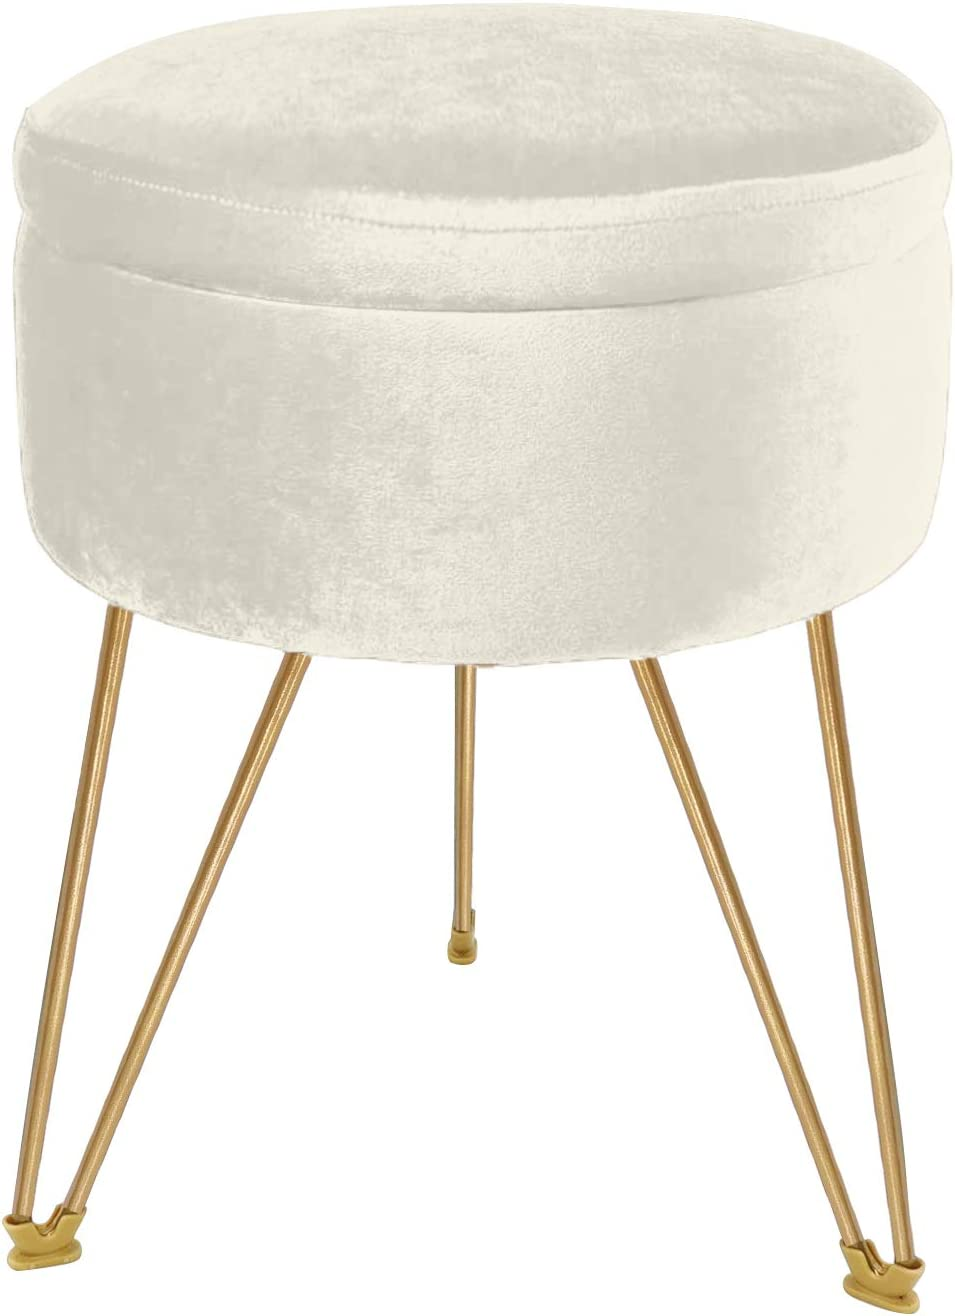 ERONE Storage Round Ottoman Velvet Footrest with Removable Cover Stool,Upholstered Vanity Chair Gold Metal Legs Pouffes Footrest Stool,Beige